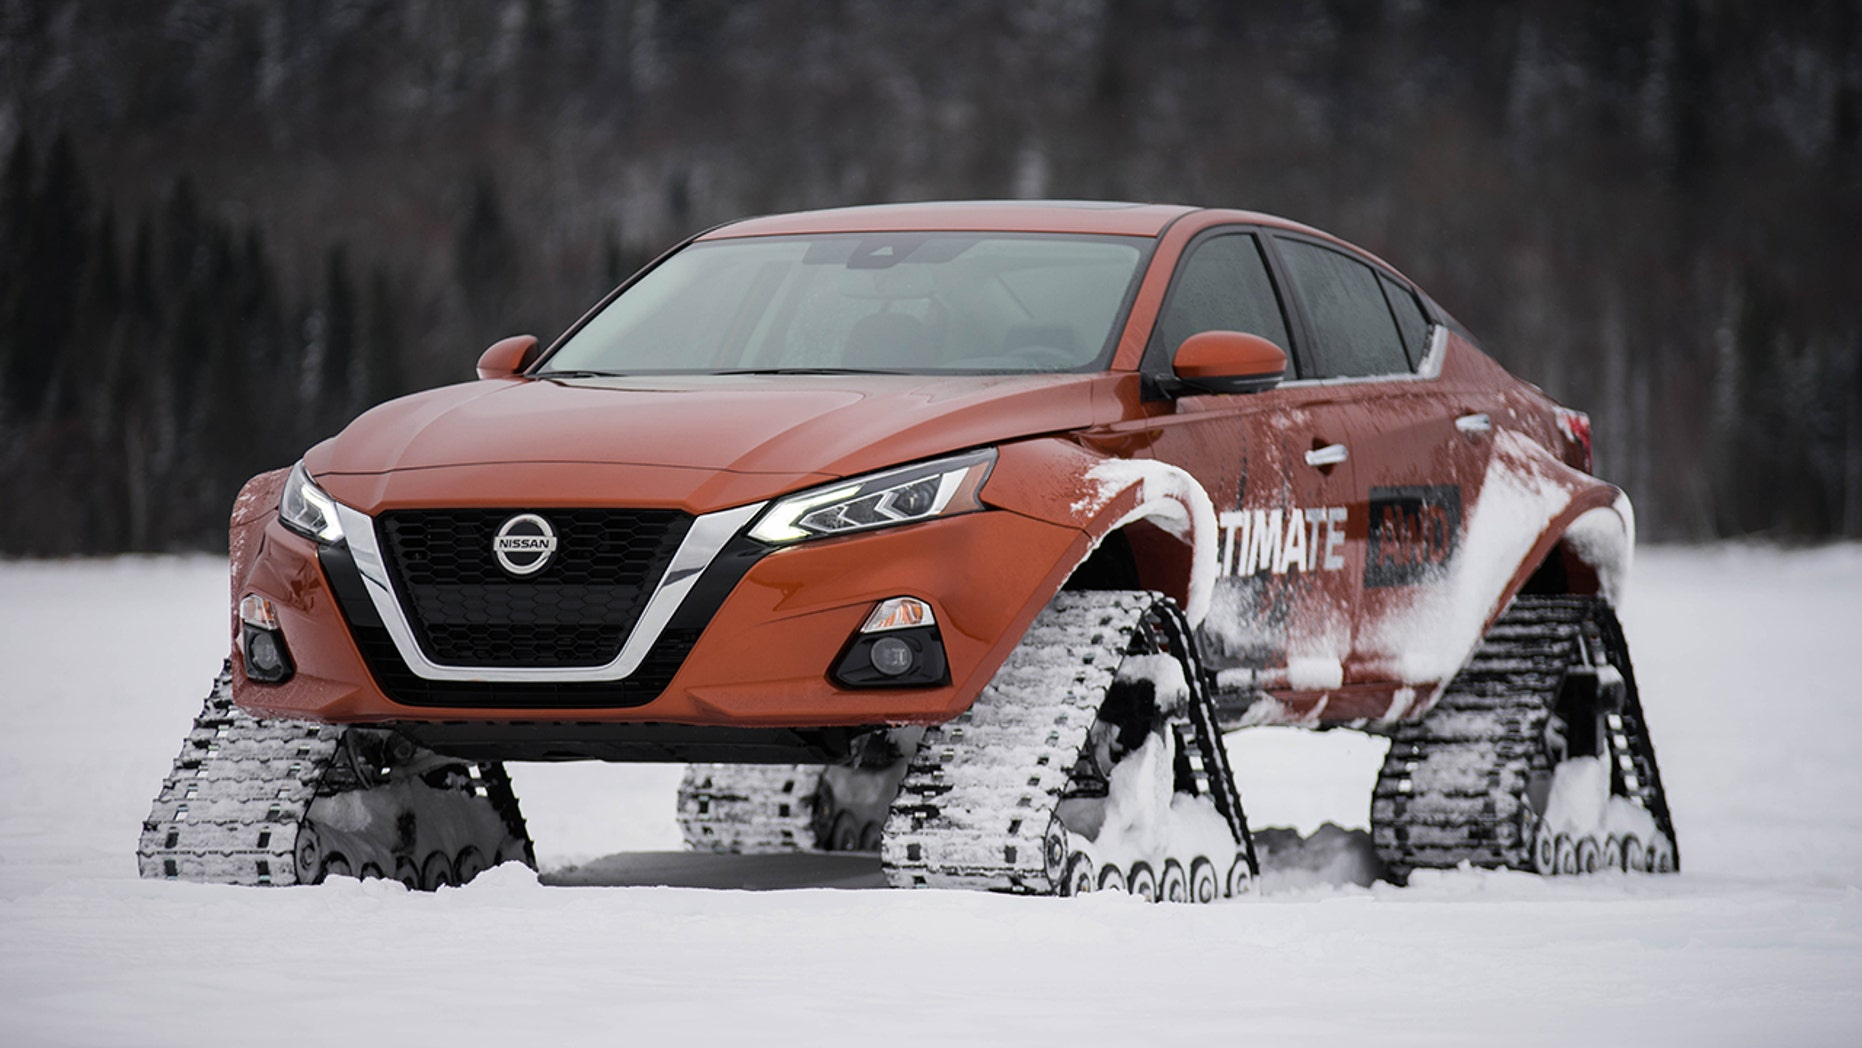 Nissan Gives Into Snow-Track Addiction Once Again, Builds Ultimate Winter Altima